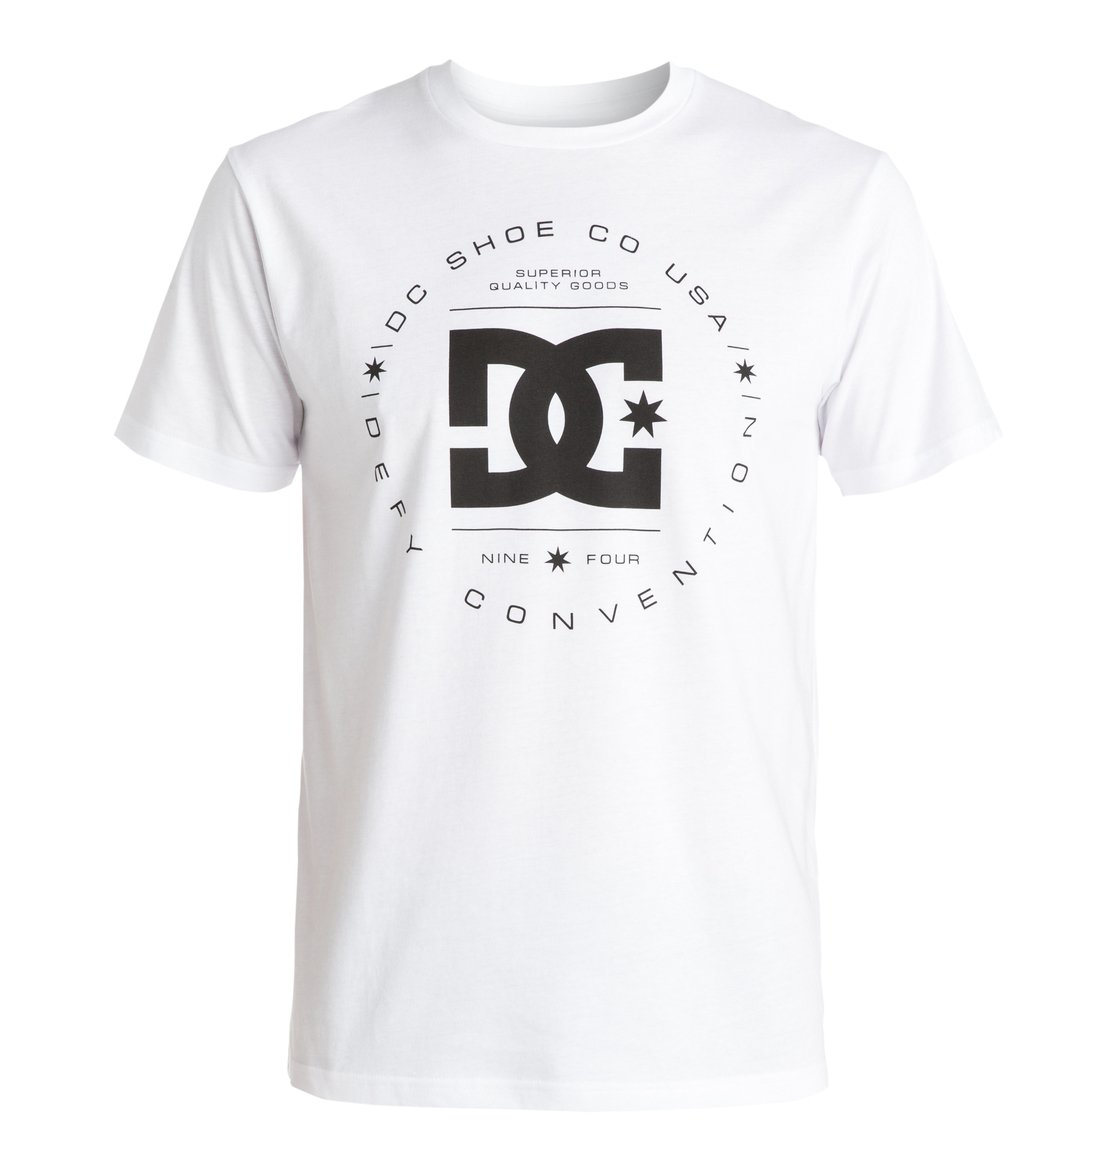 Men's DC Shoes T-shirts Founded in , DC Shoes is a California-based label specializing in shoes for skateboarders. Created by Ken Block and Damon Way, the label rose to prominence throughout the 90s and now produces full collections of cool, urban apparel for sports and casualwear.